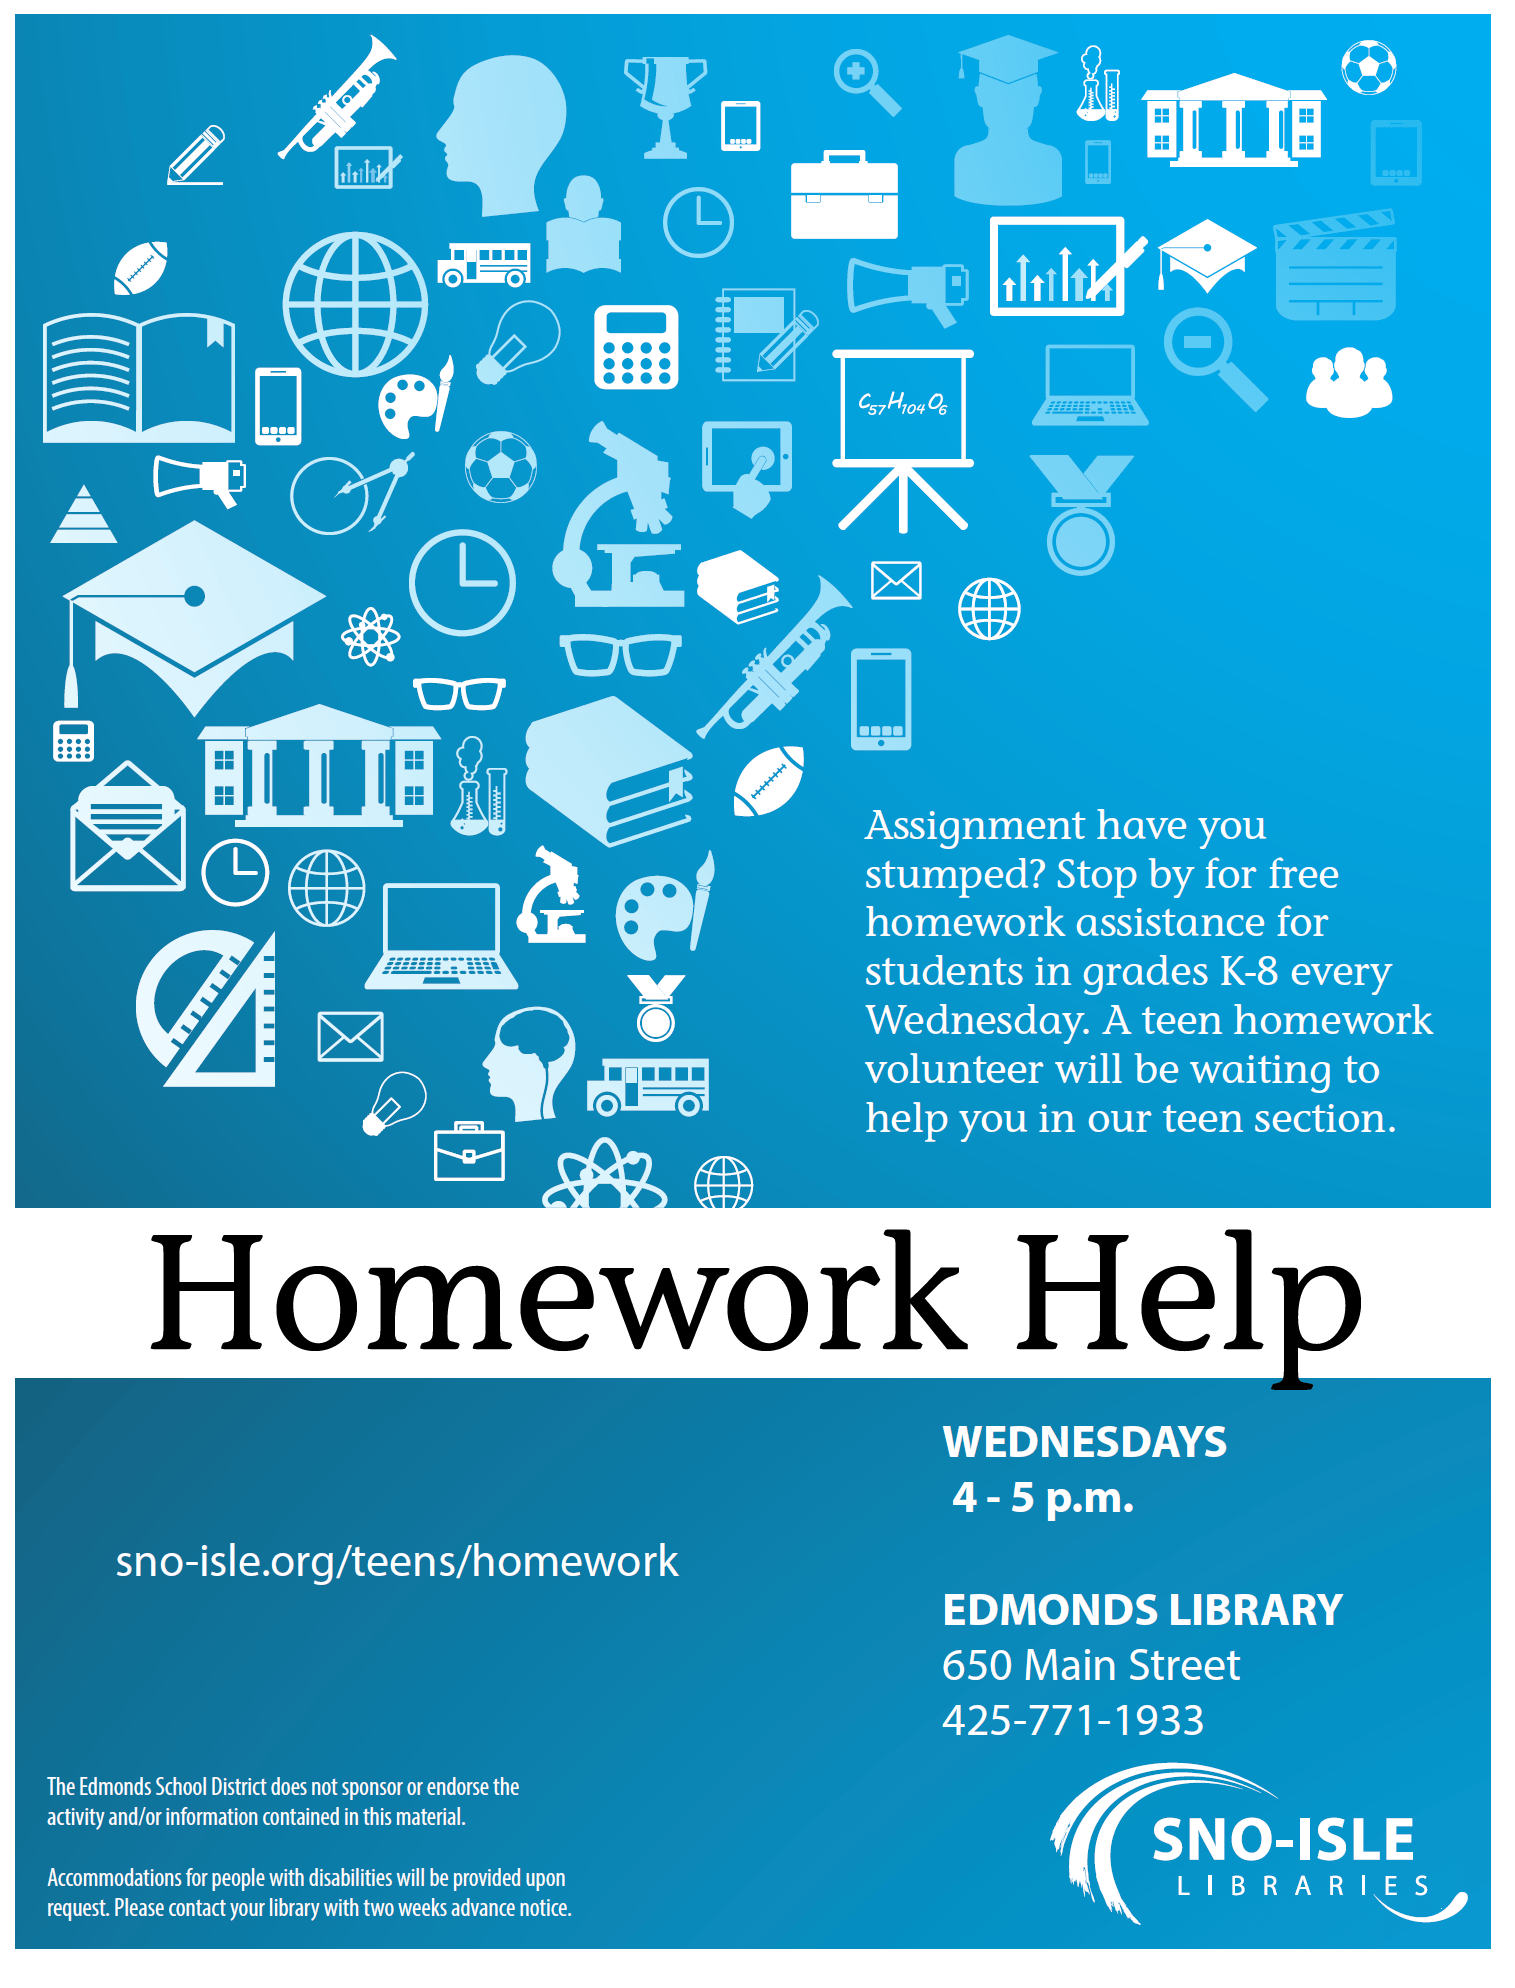 Angeles public library homework help      Los Angeles Public Library  Free live homework help